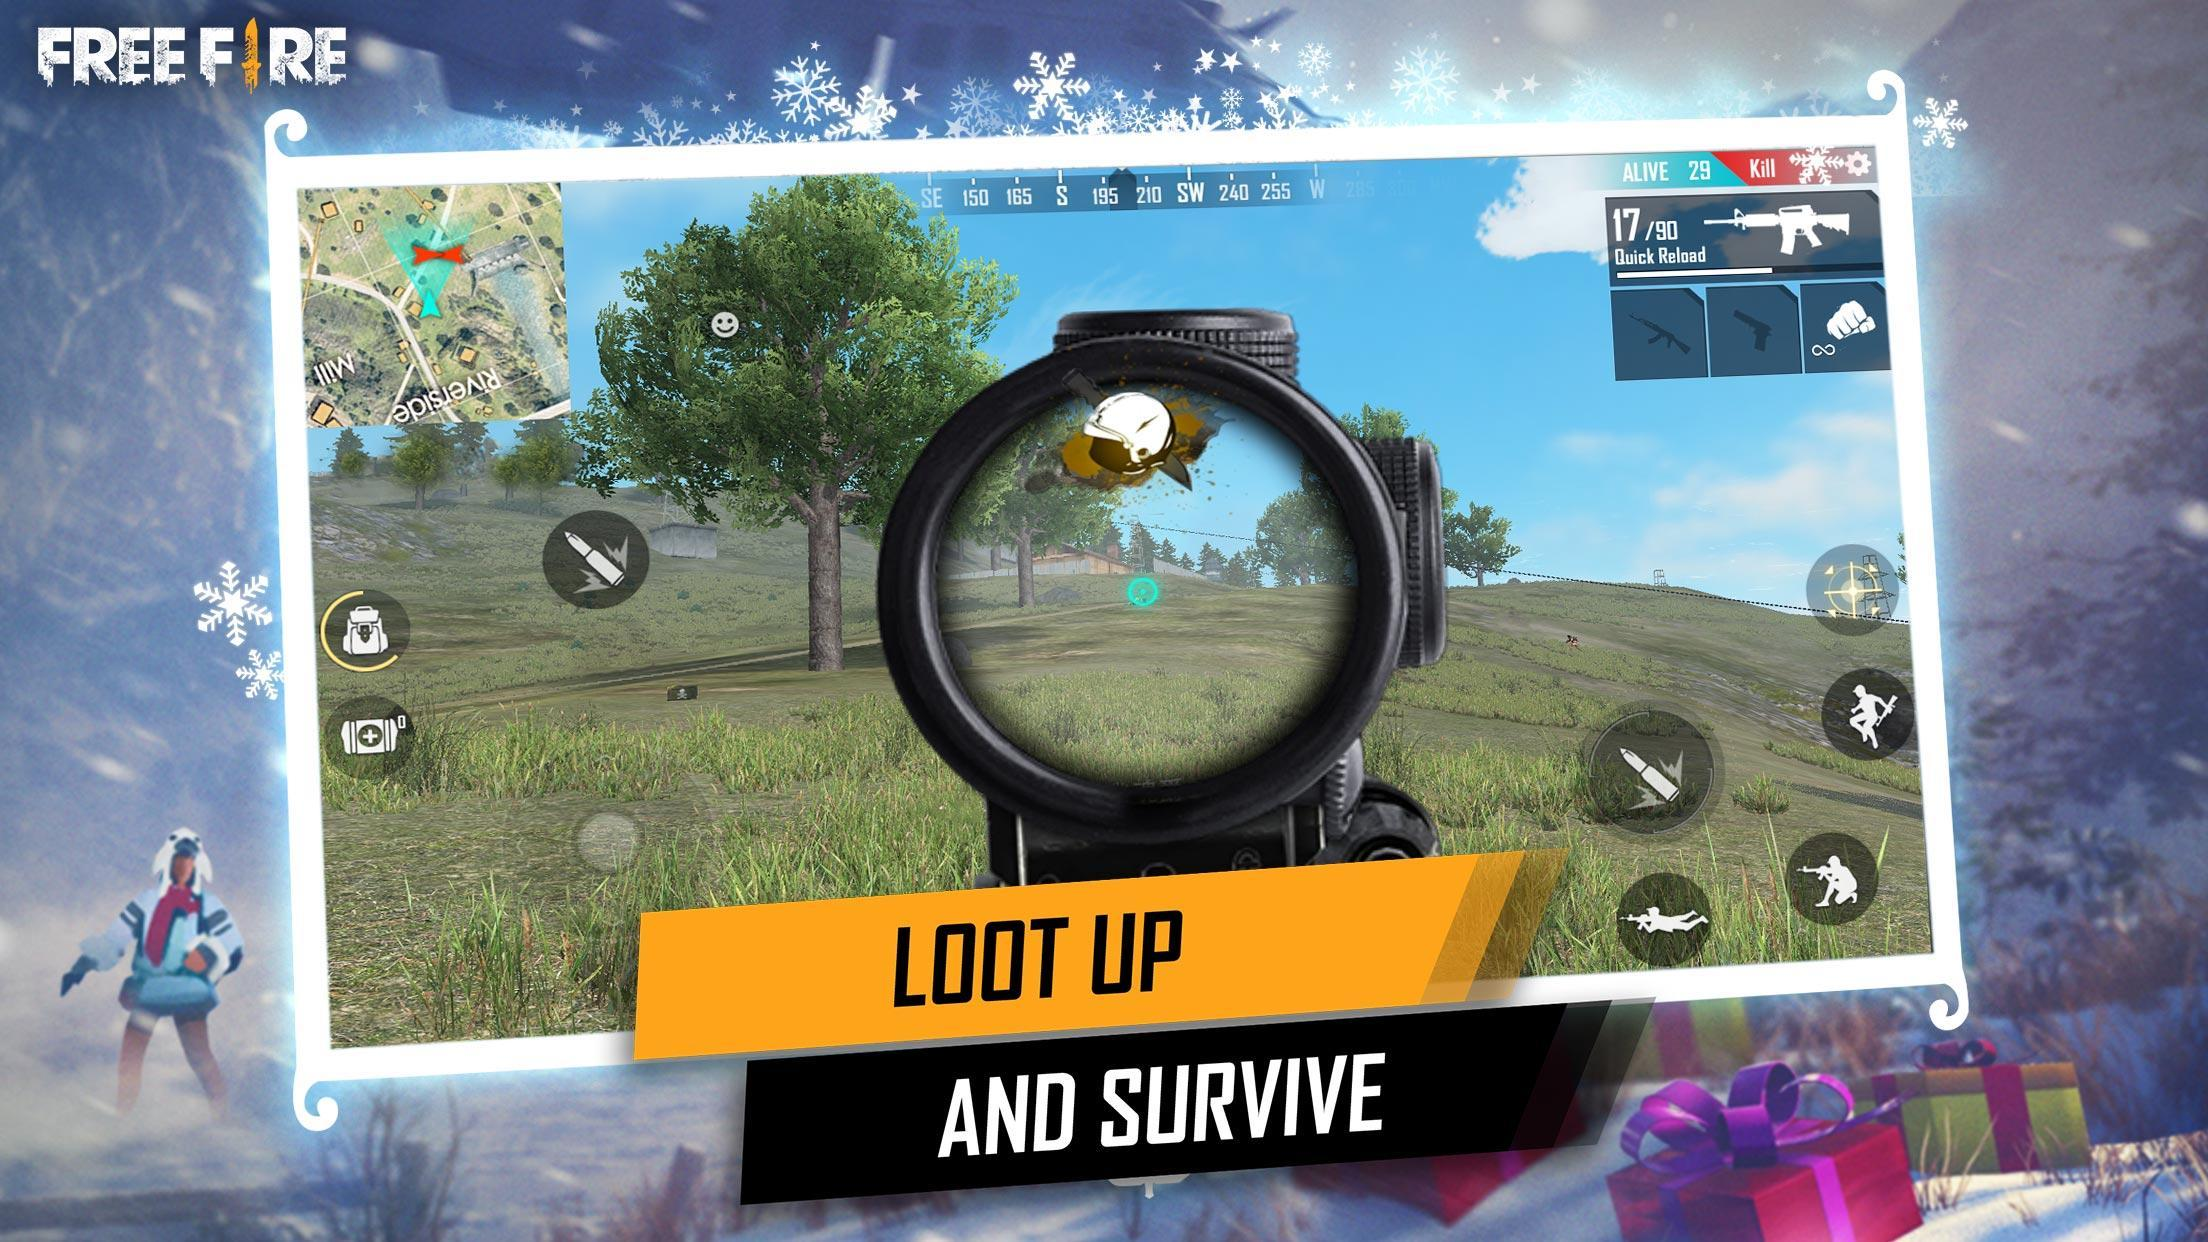 Free Fire Unlimited Diamond Apk Download Aimbot Unlimited Uc Health